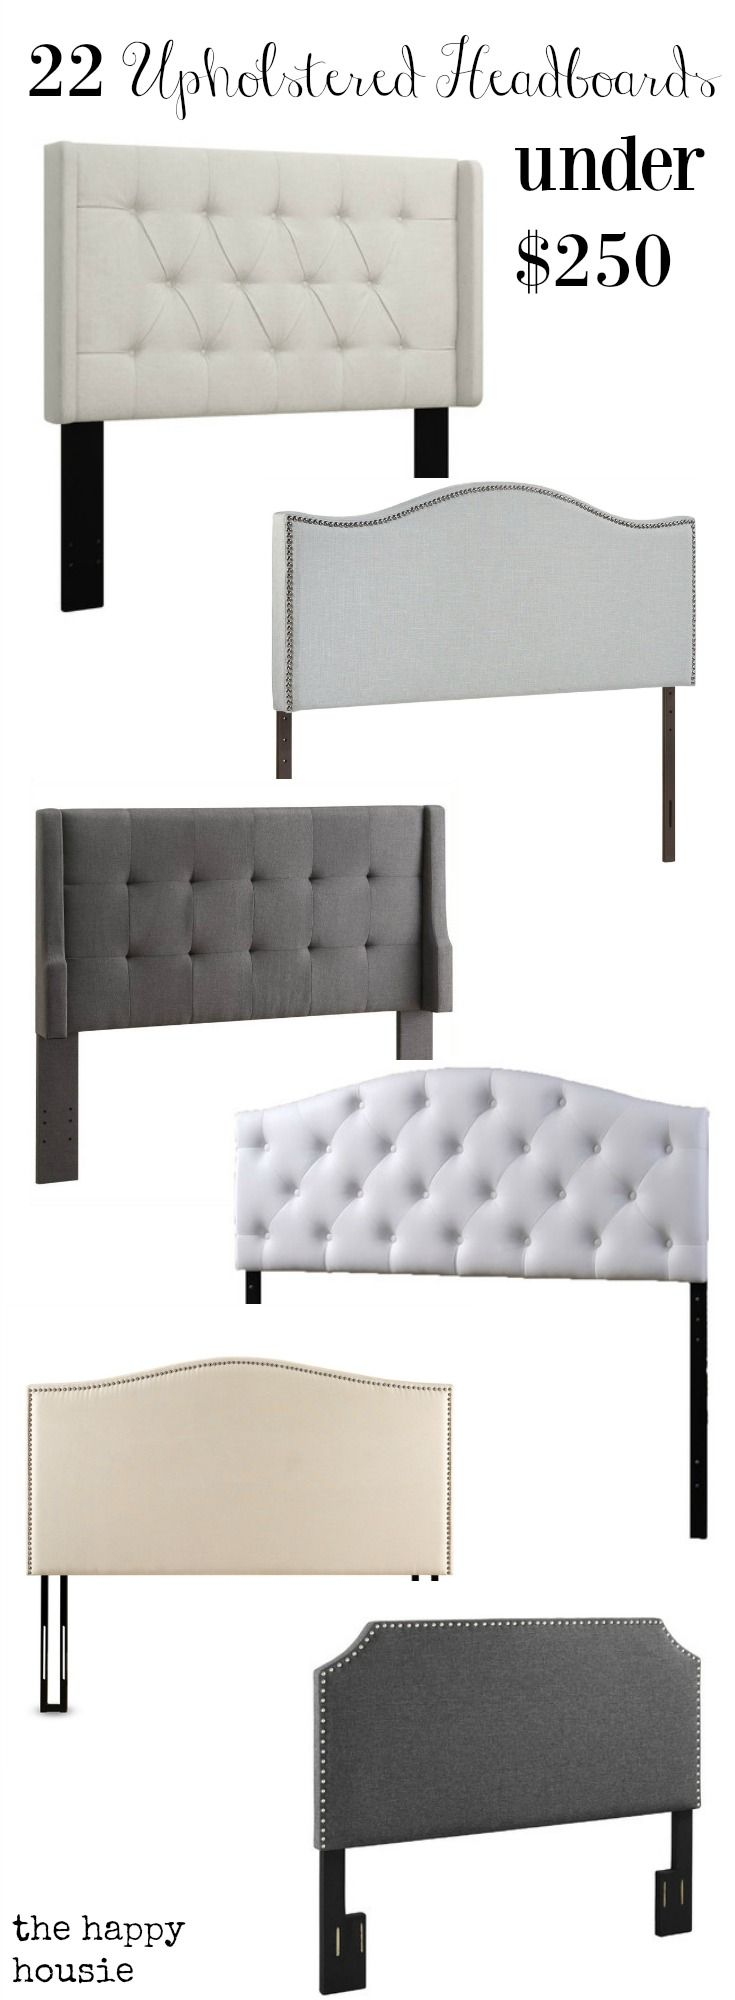 40 best images about headboards on pinterest for Affordable furniture facebook